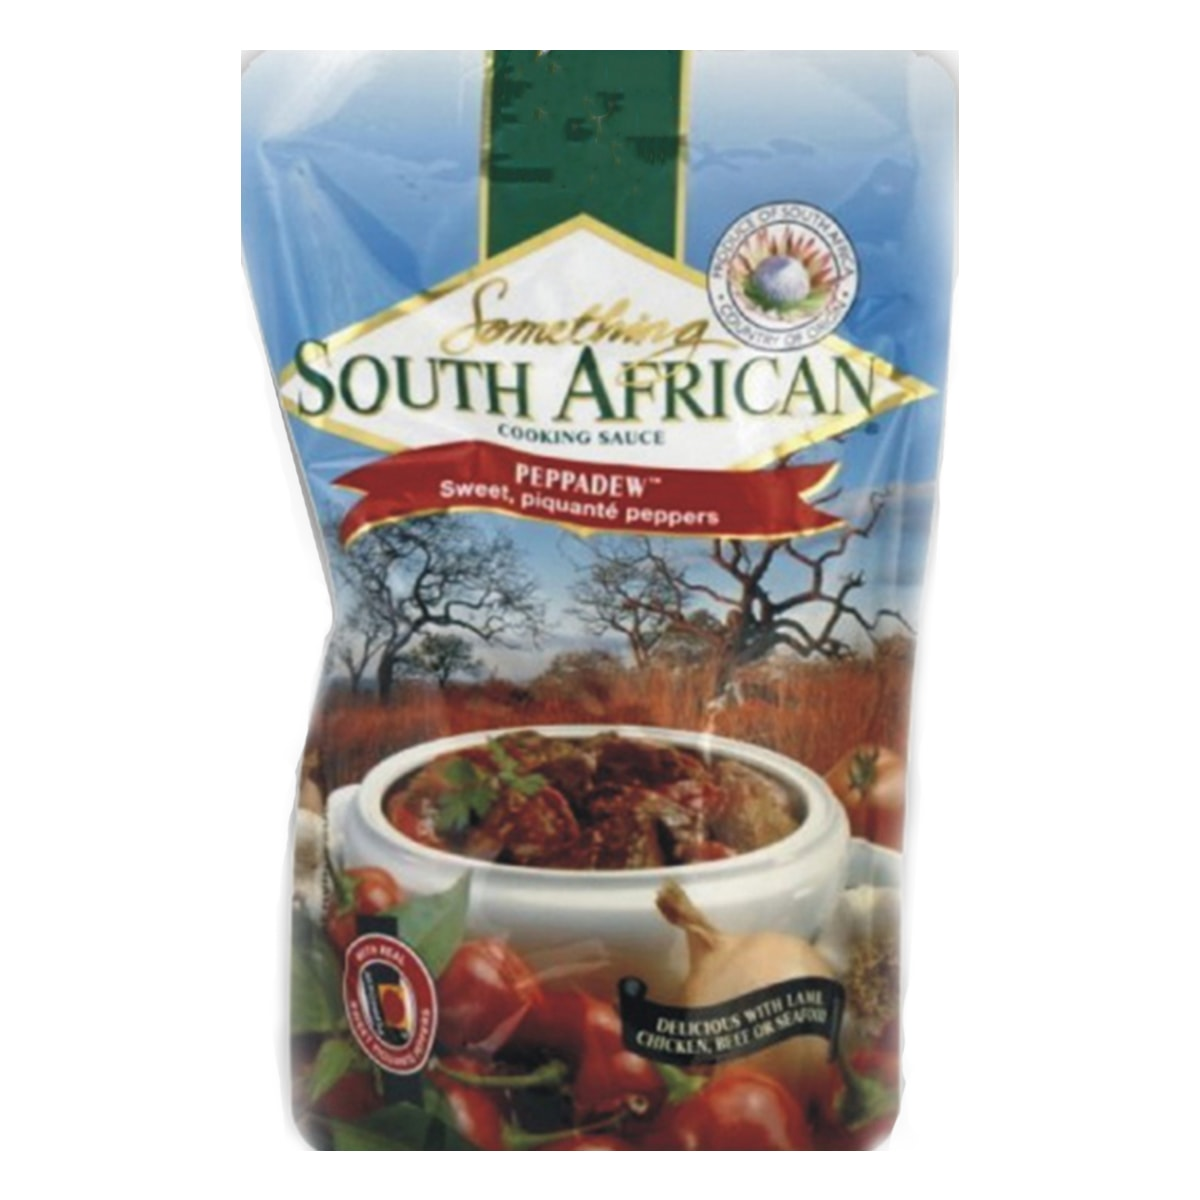 Buy Something South African Peppadew Curry Cooking Sauce - 475 ml